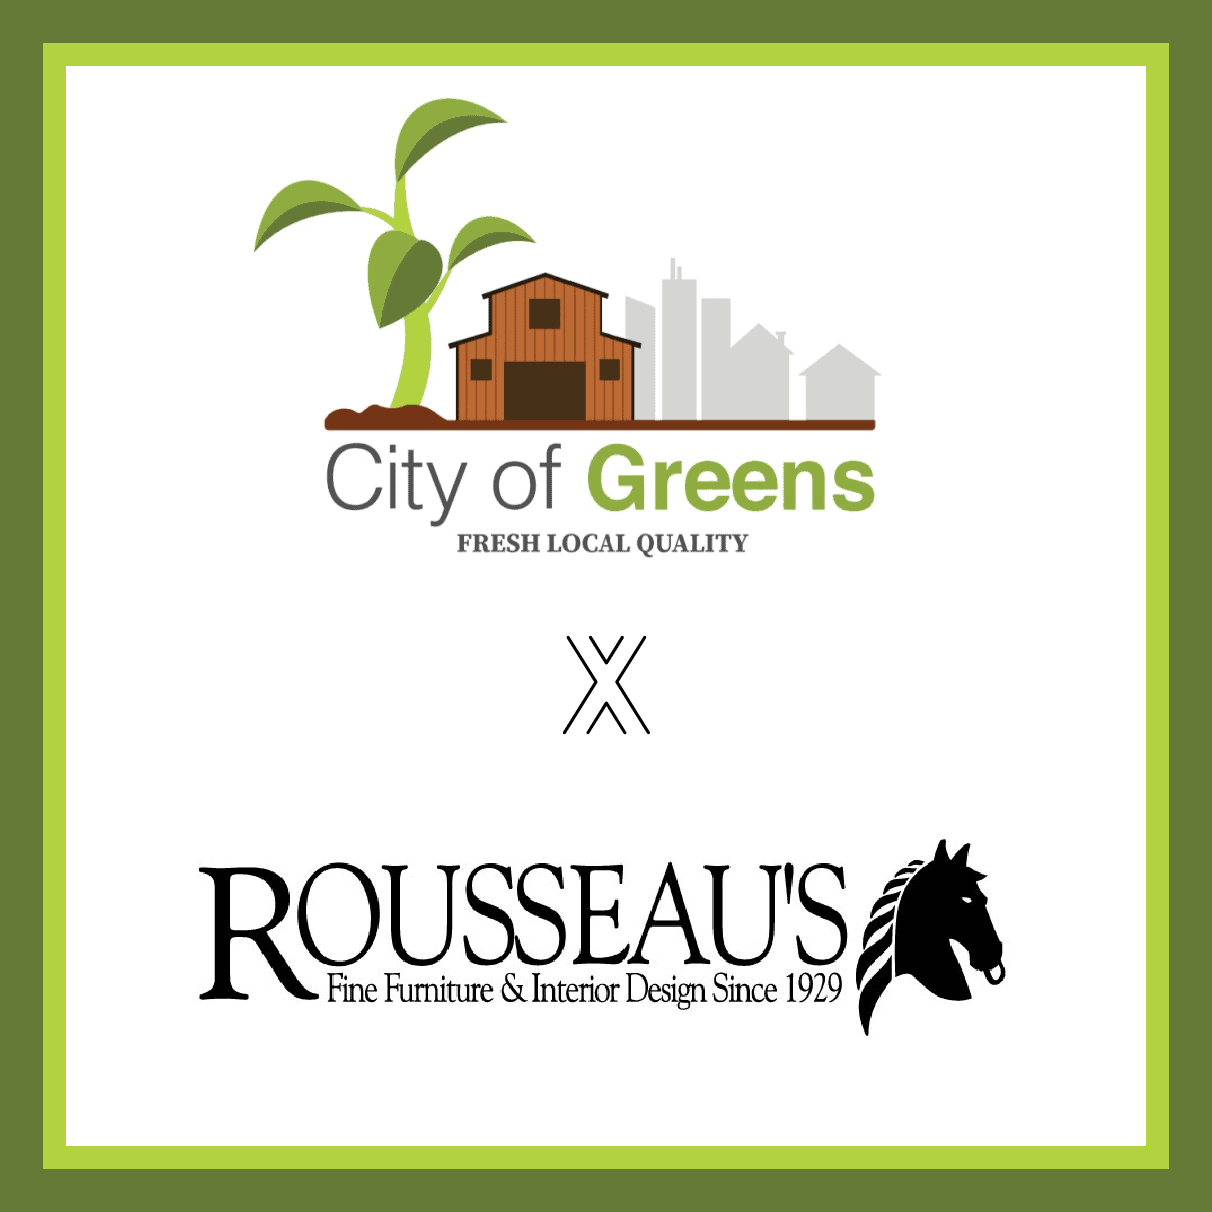 Introducing: Rousseau's x City of Greens